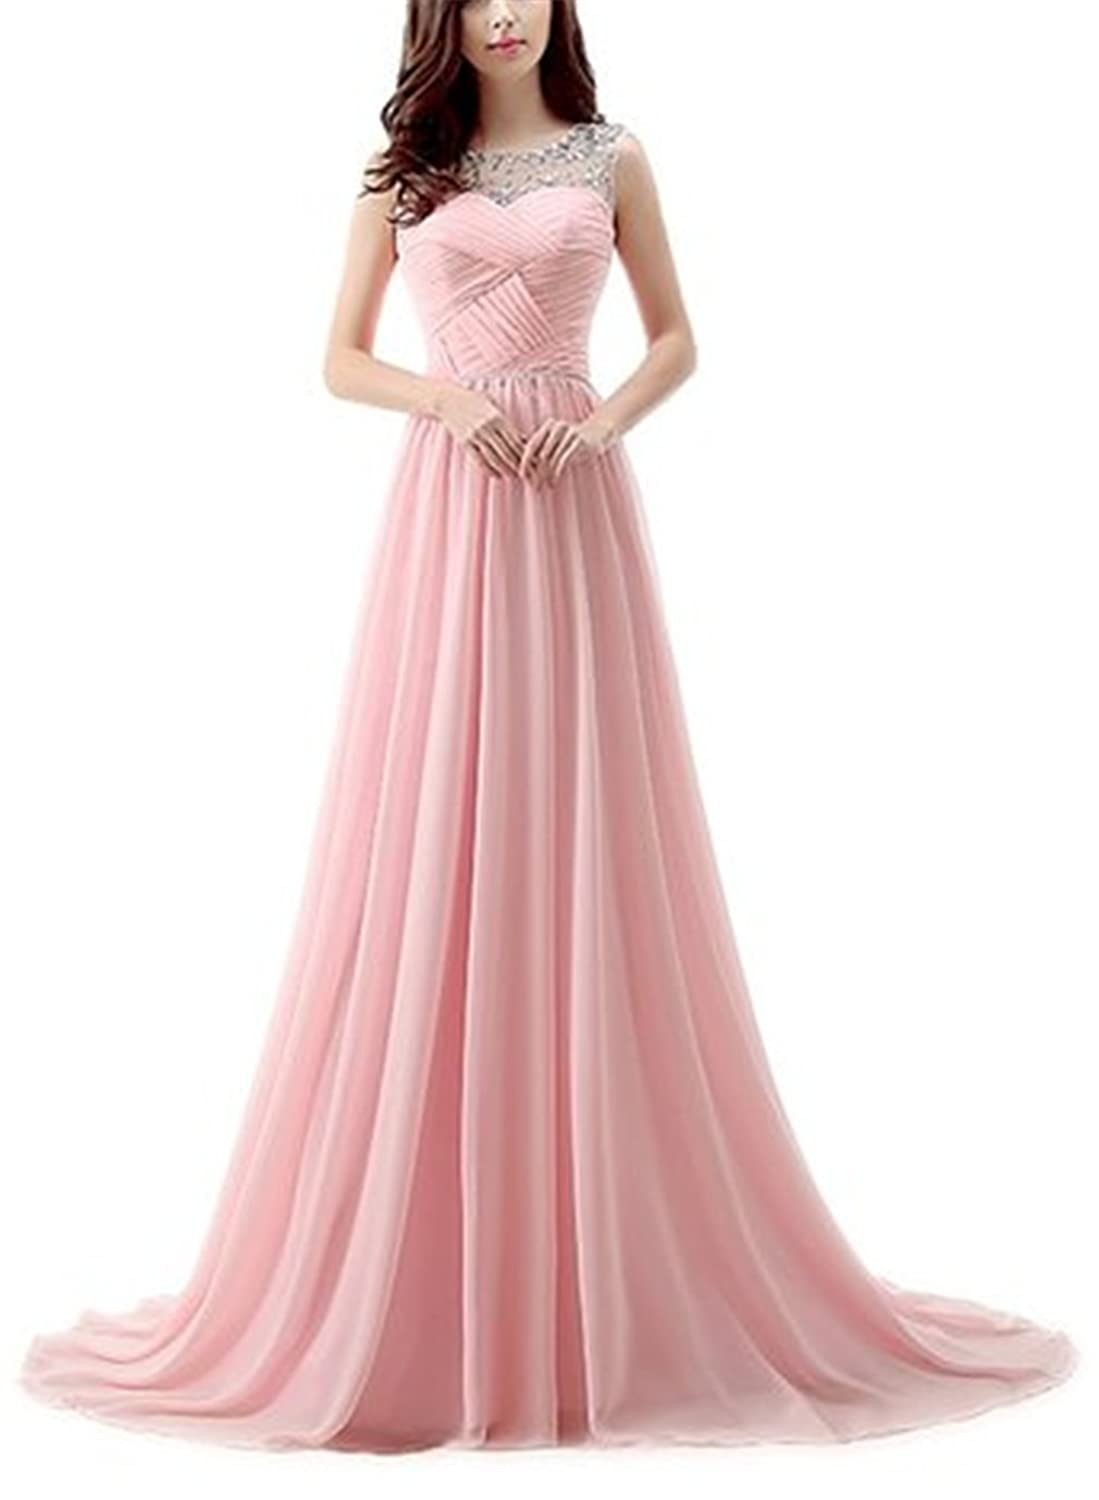 HelloGirls Sheer Crystal Sequins Straps Ruched Backless A-line Chiffon Prom Dress